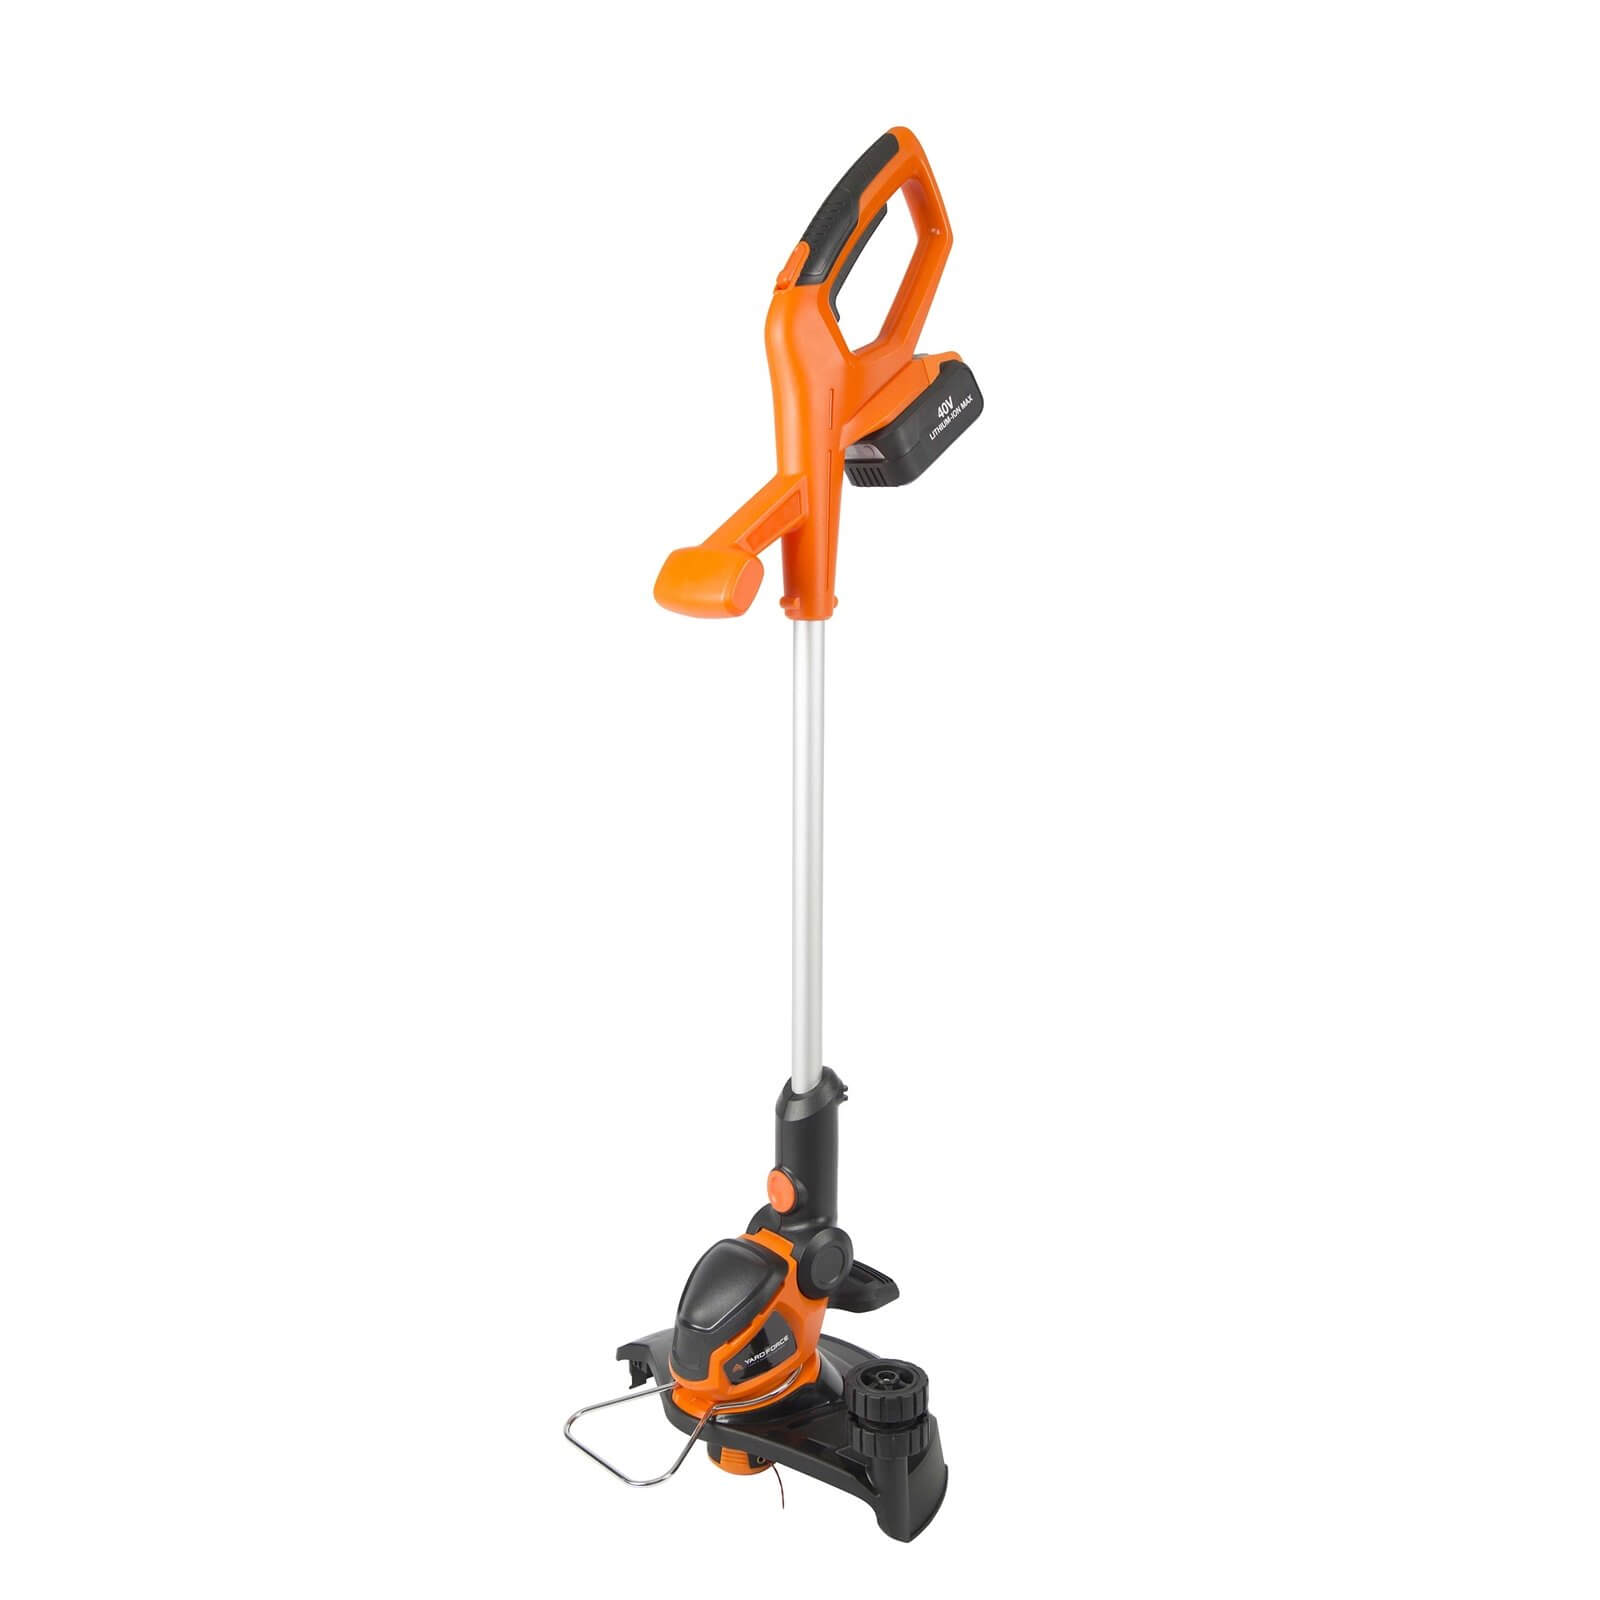 Yard Force 40V 30cm Cordless Grass Trimmer with 2.5Ah Lithium-Ion Battery and Charger